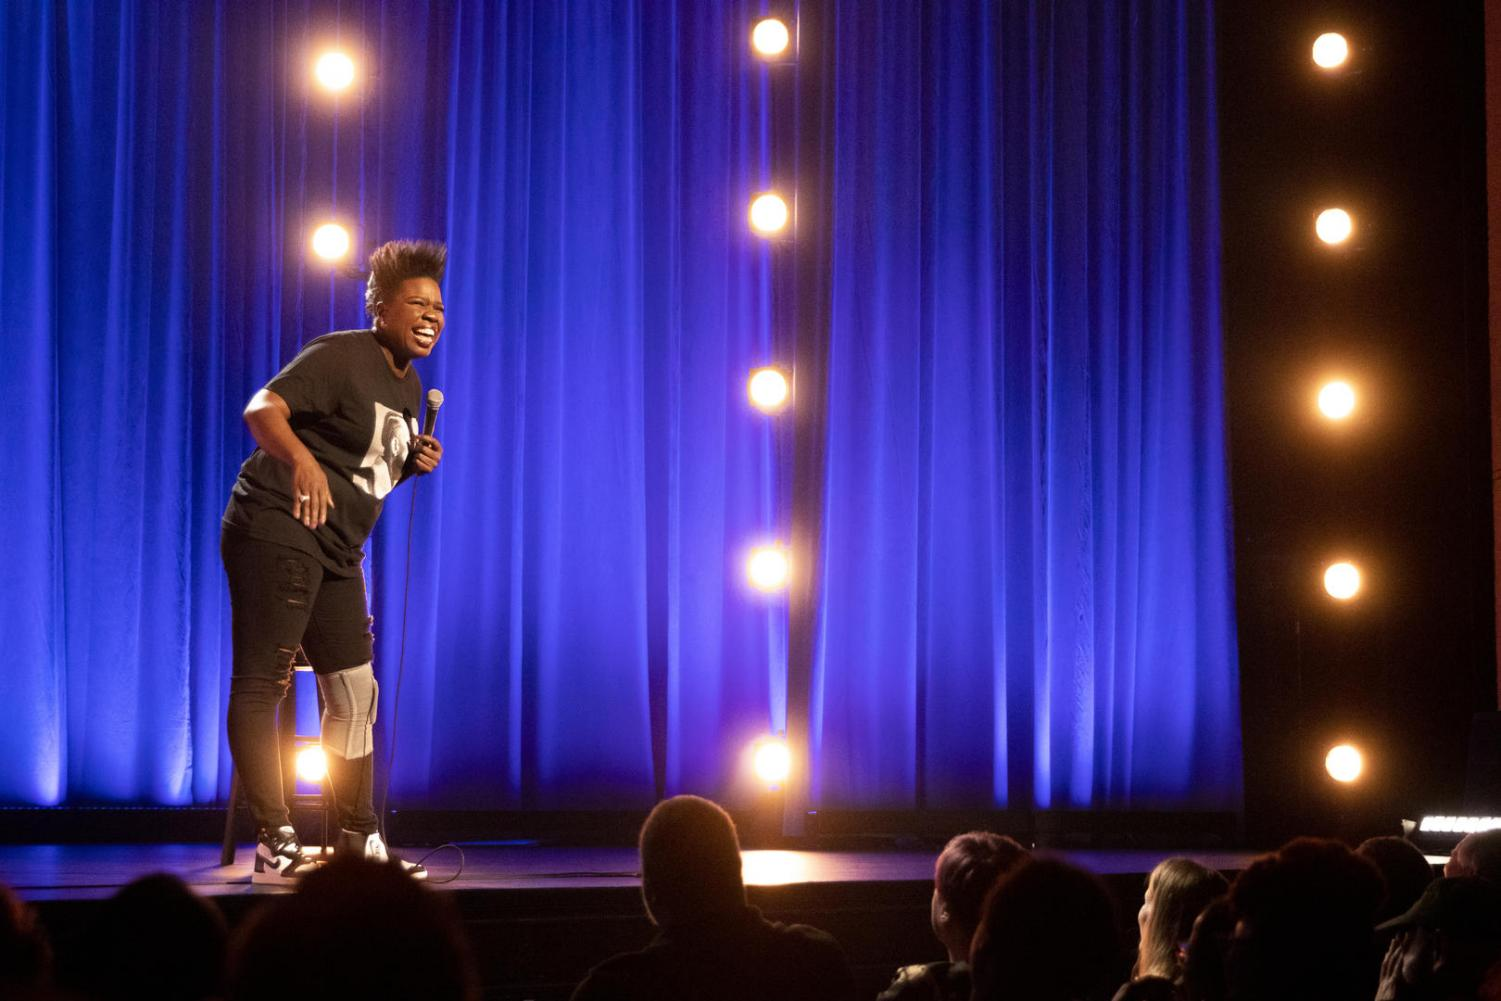 Comedian Leslie Jones performs her stand-up routine in her Netflix comedy special